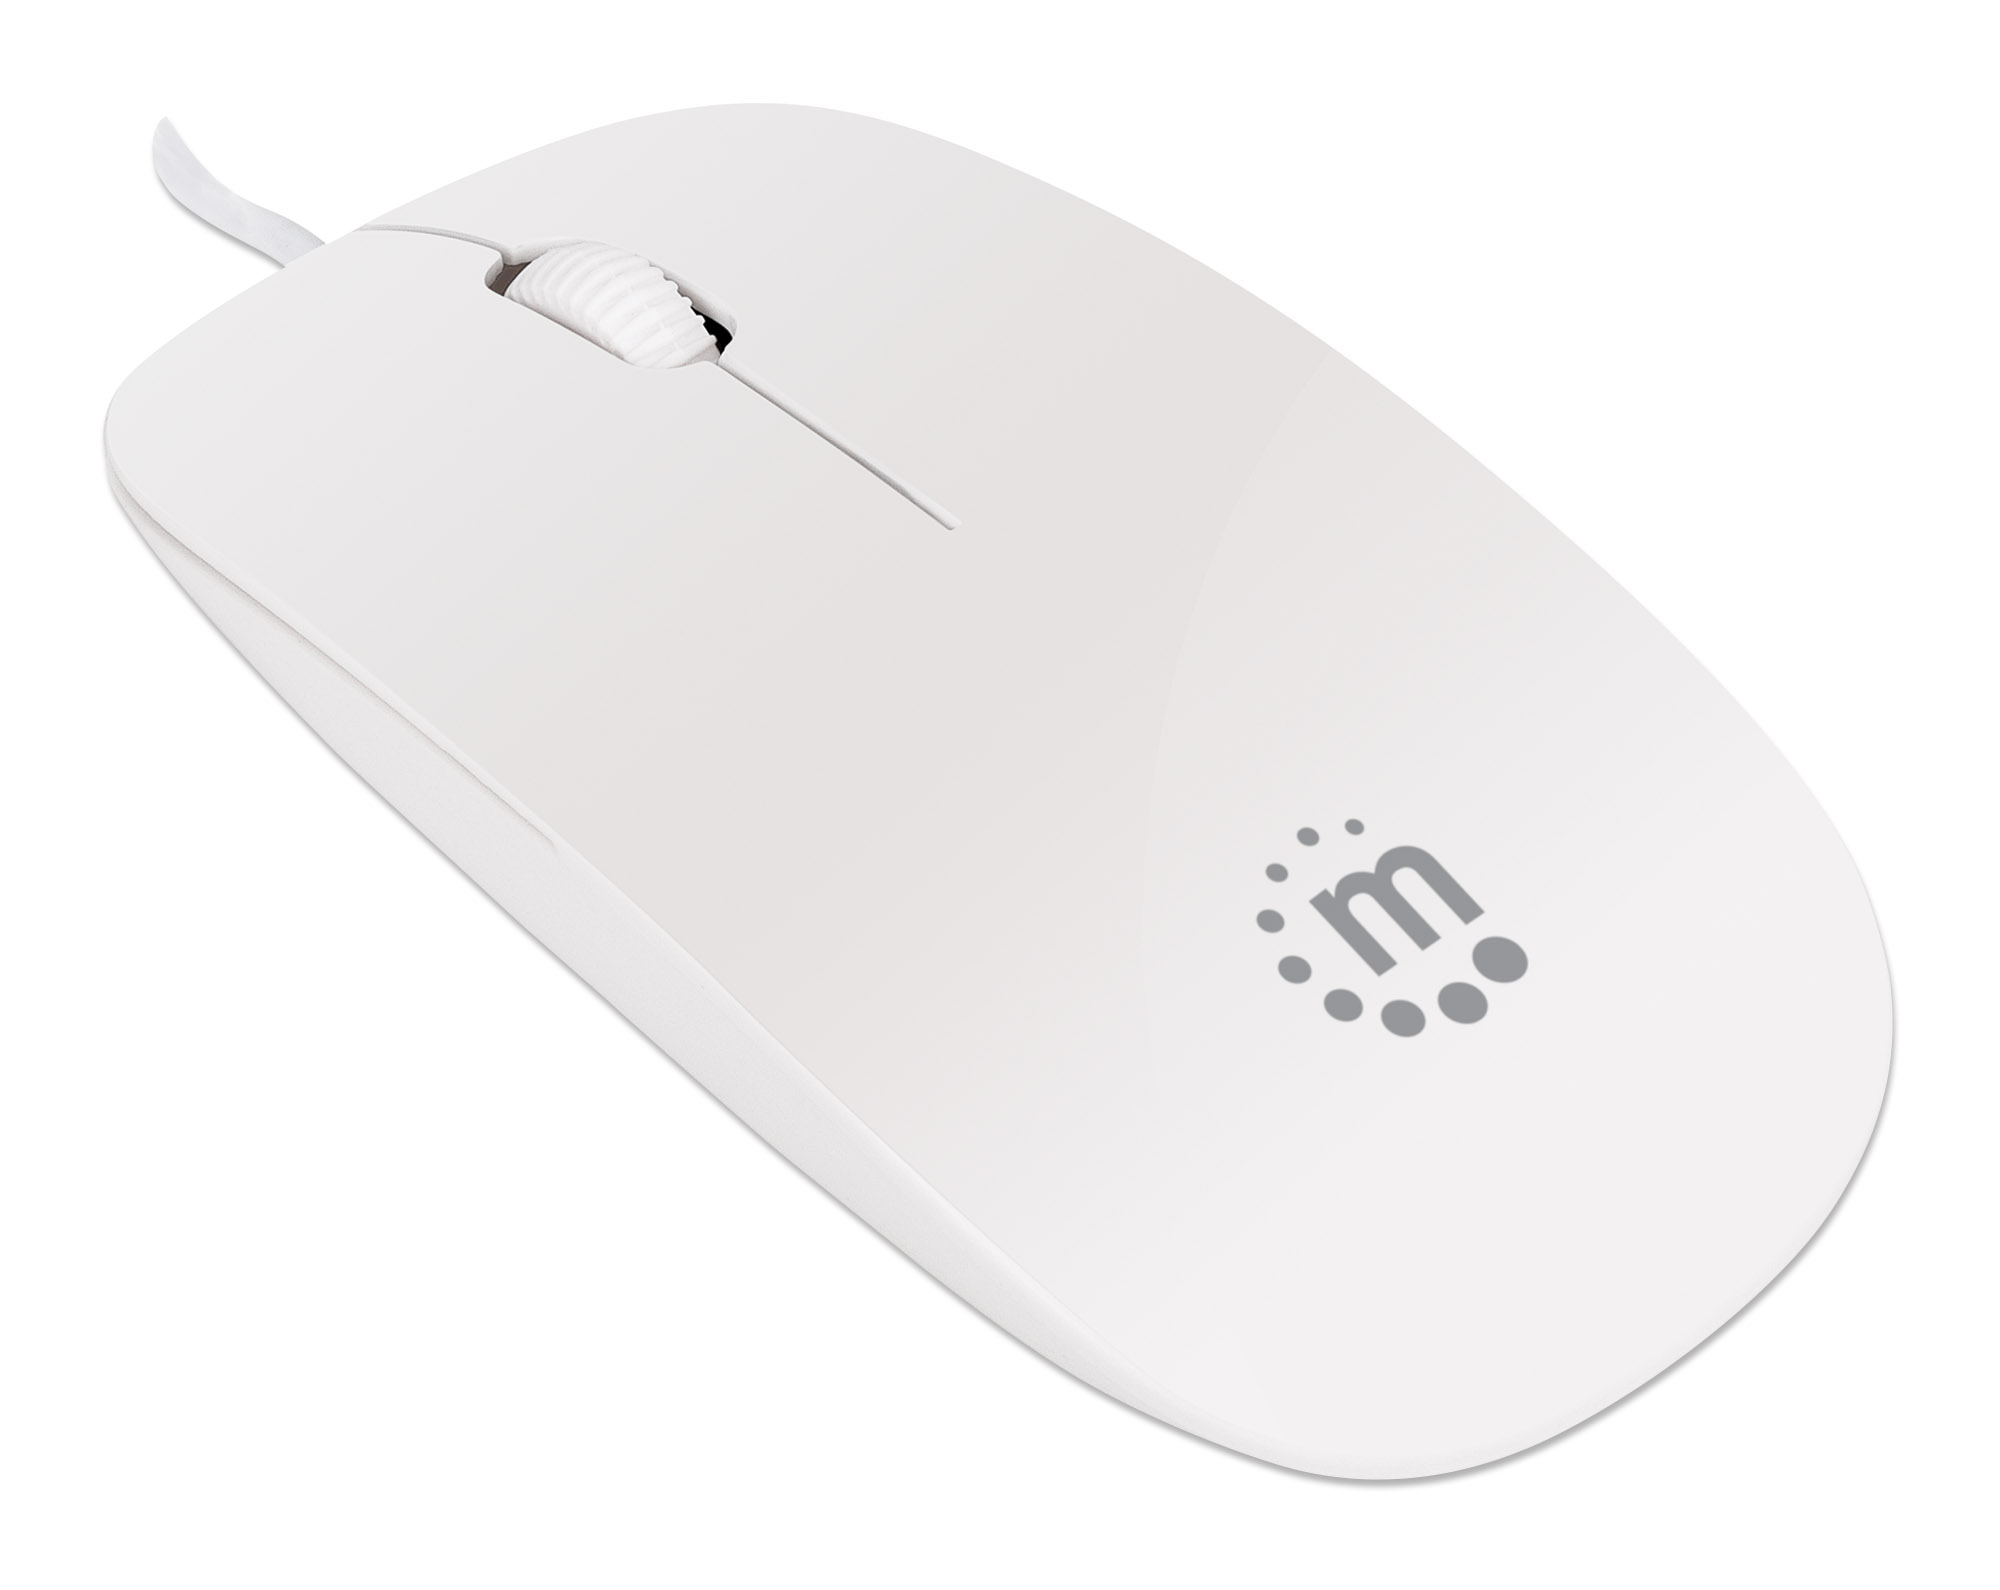 Silhouette Optical Mouse